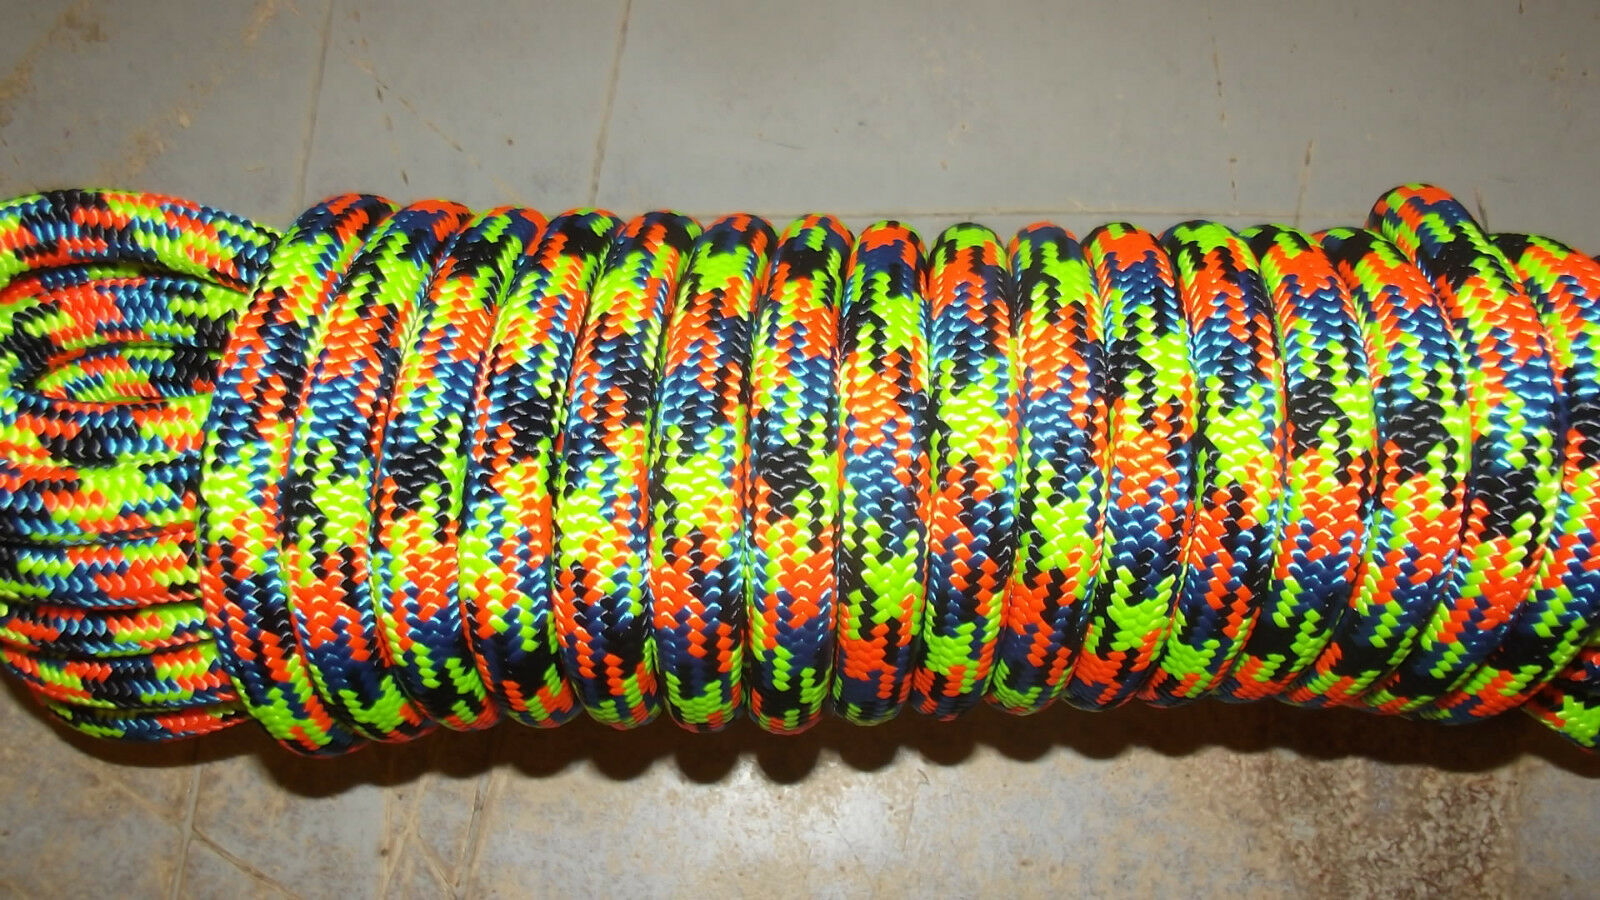 NEW 11.7mm (15 32 ) x 55' Kernmantle Static Line,  Climbing Rope  40% off